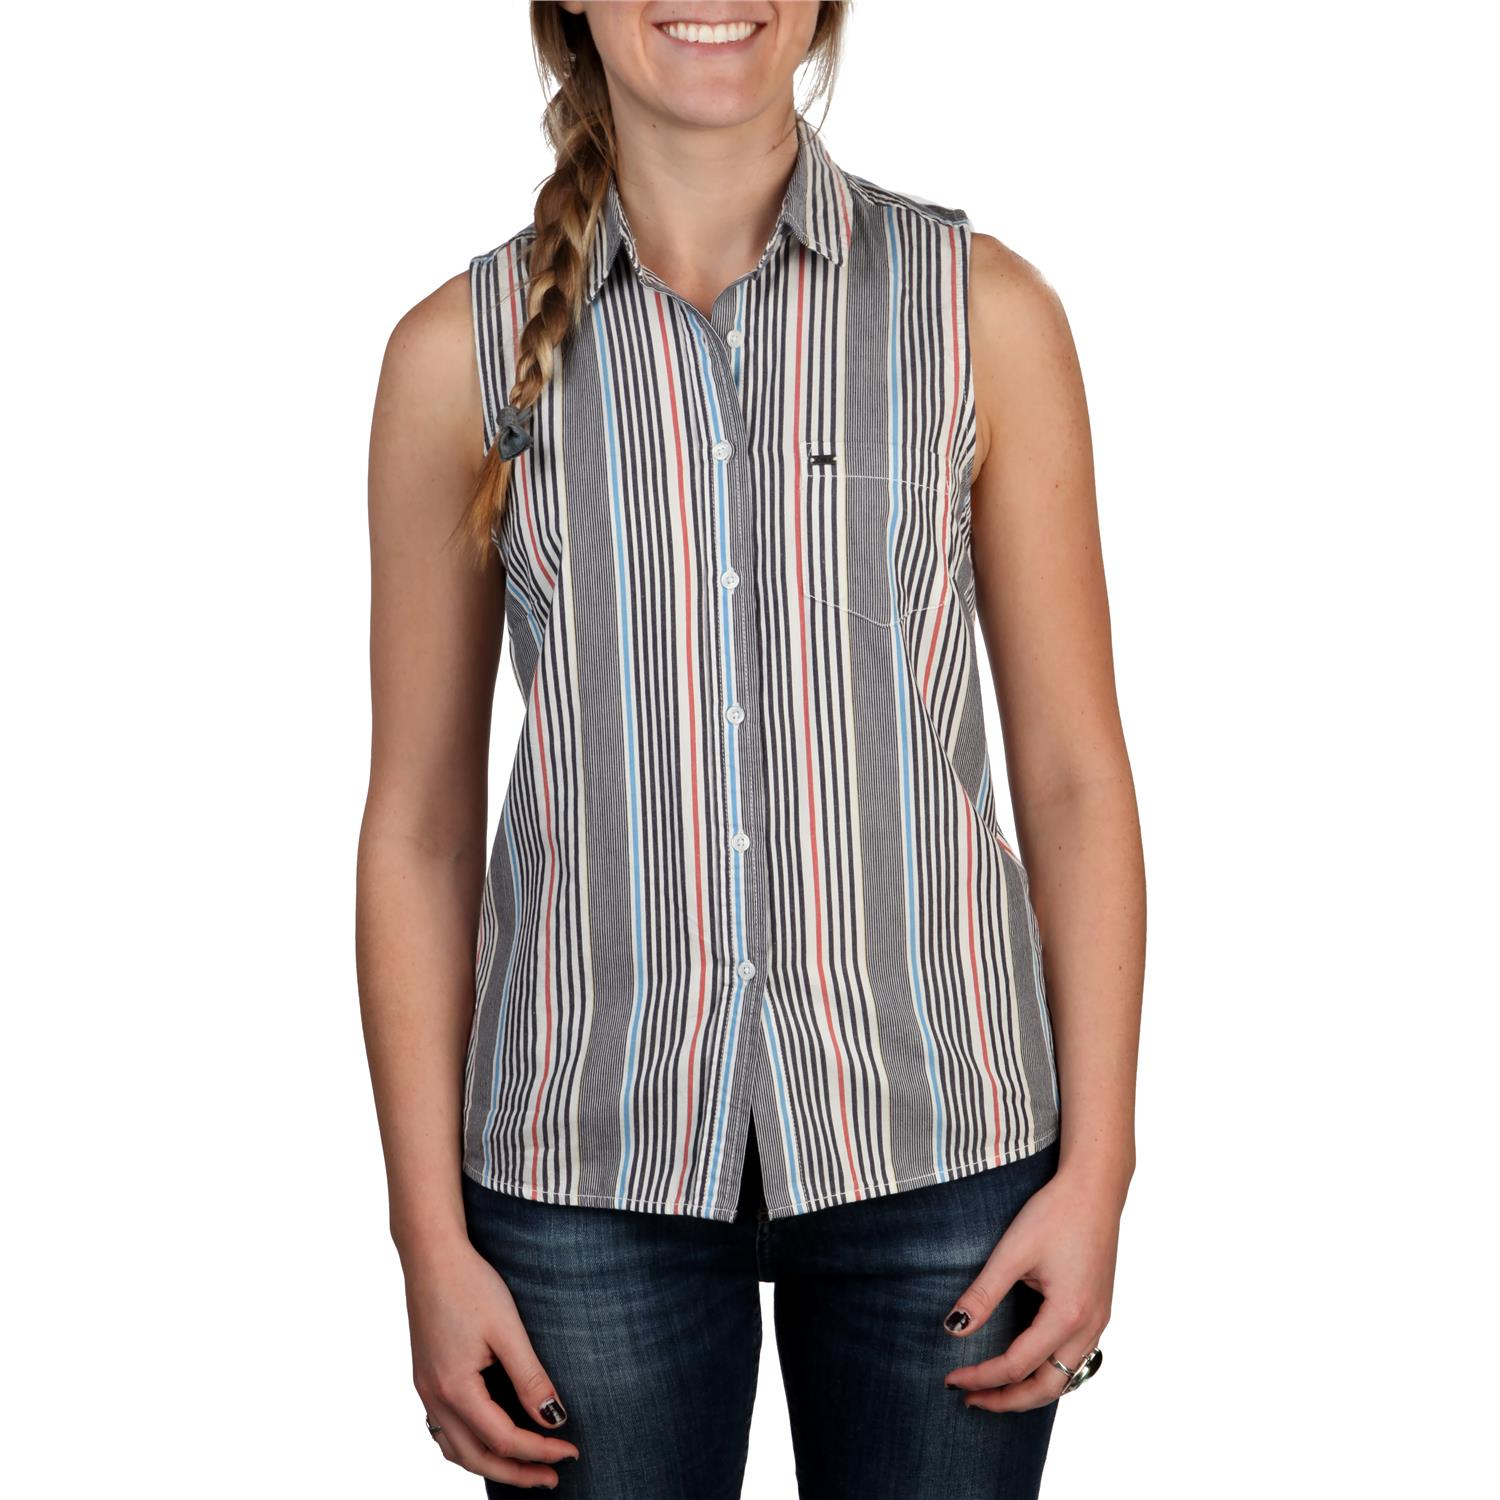 Obey clothing pearce sleeveless button down shirt women for Women s button down dress shirts